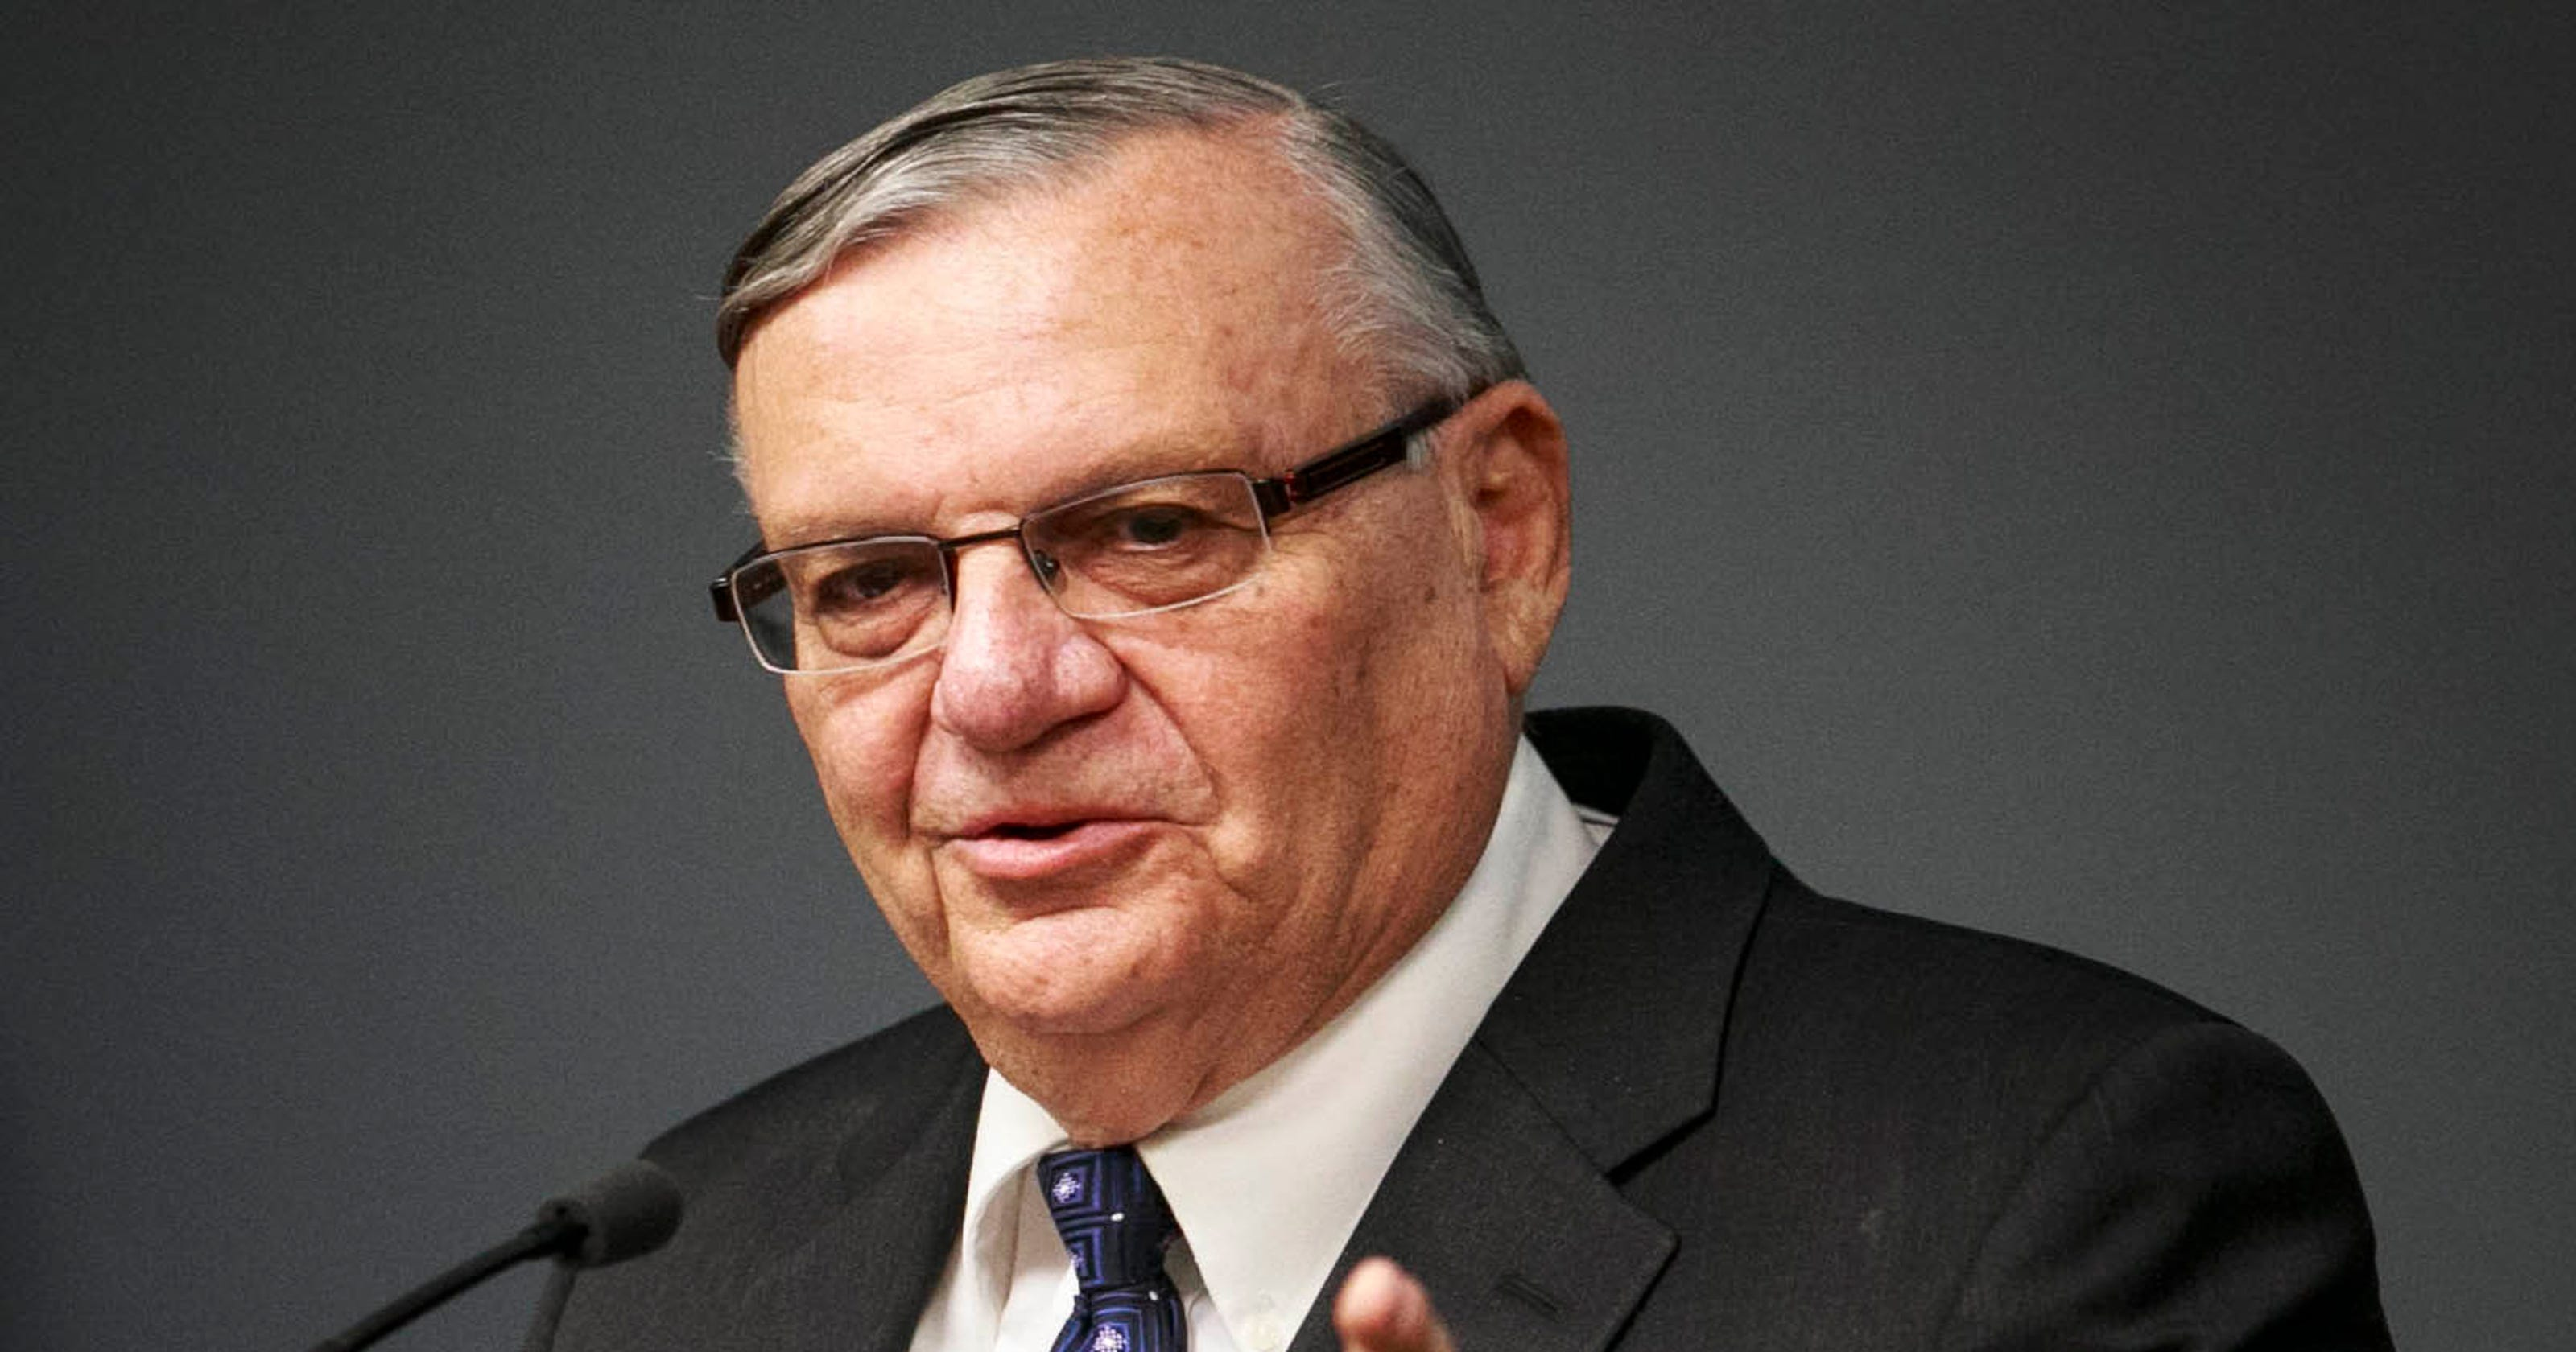 Arizona county votes to settle bias suit against Arpaio